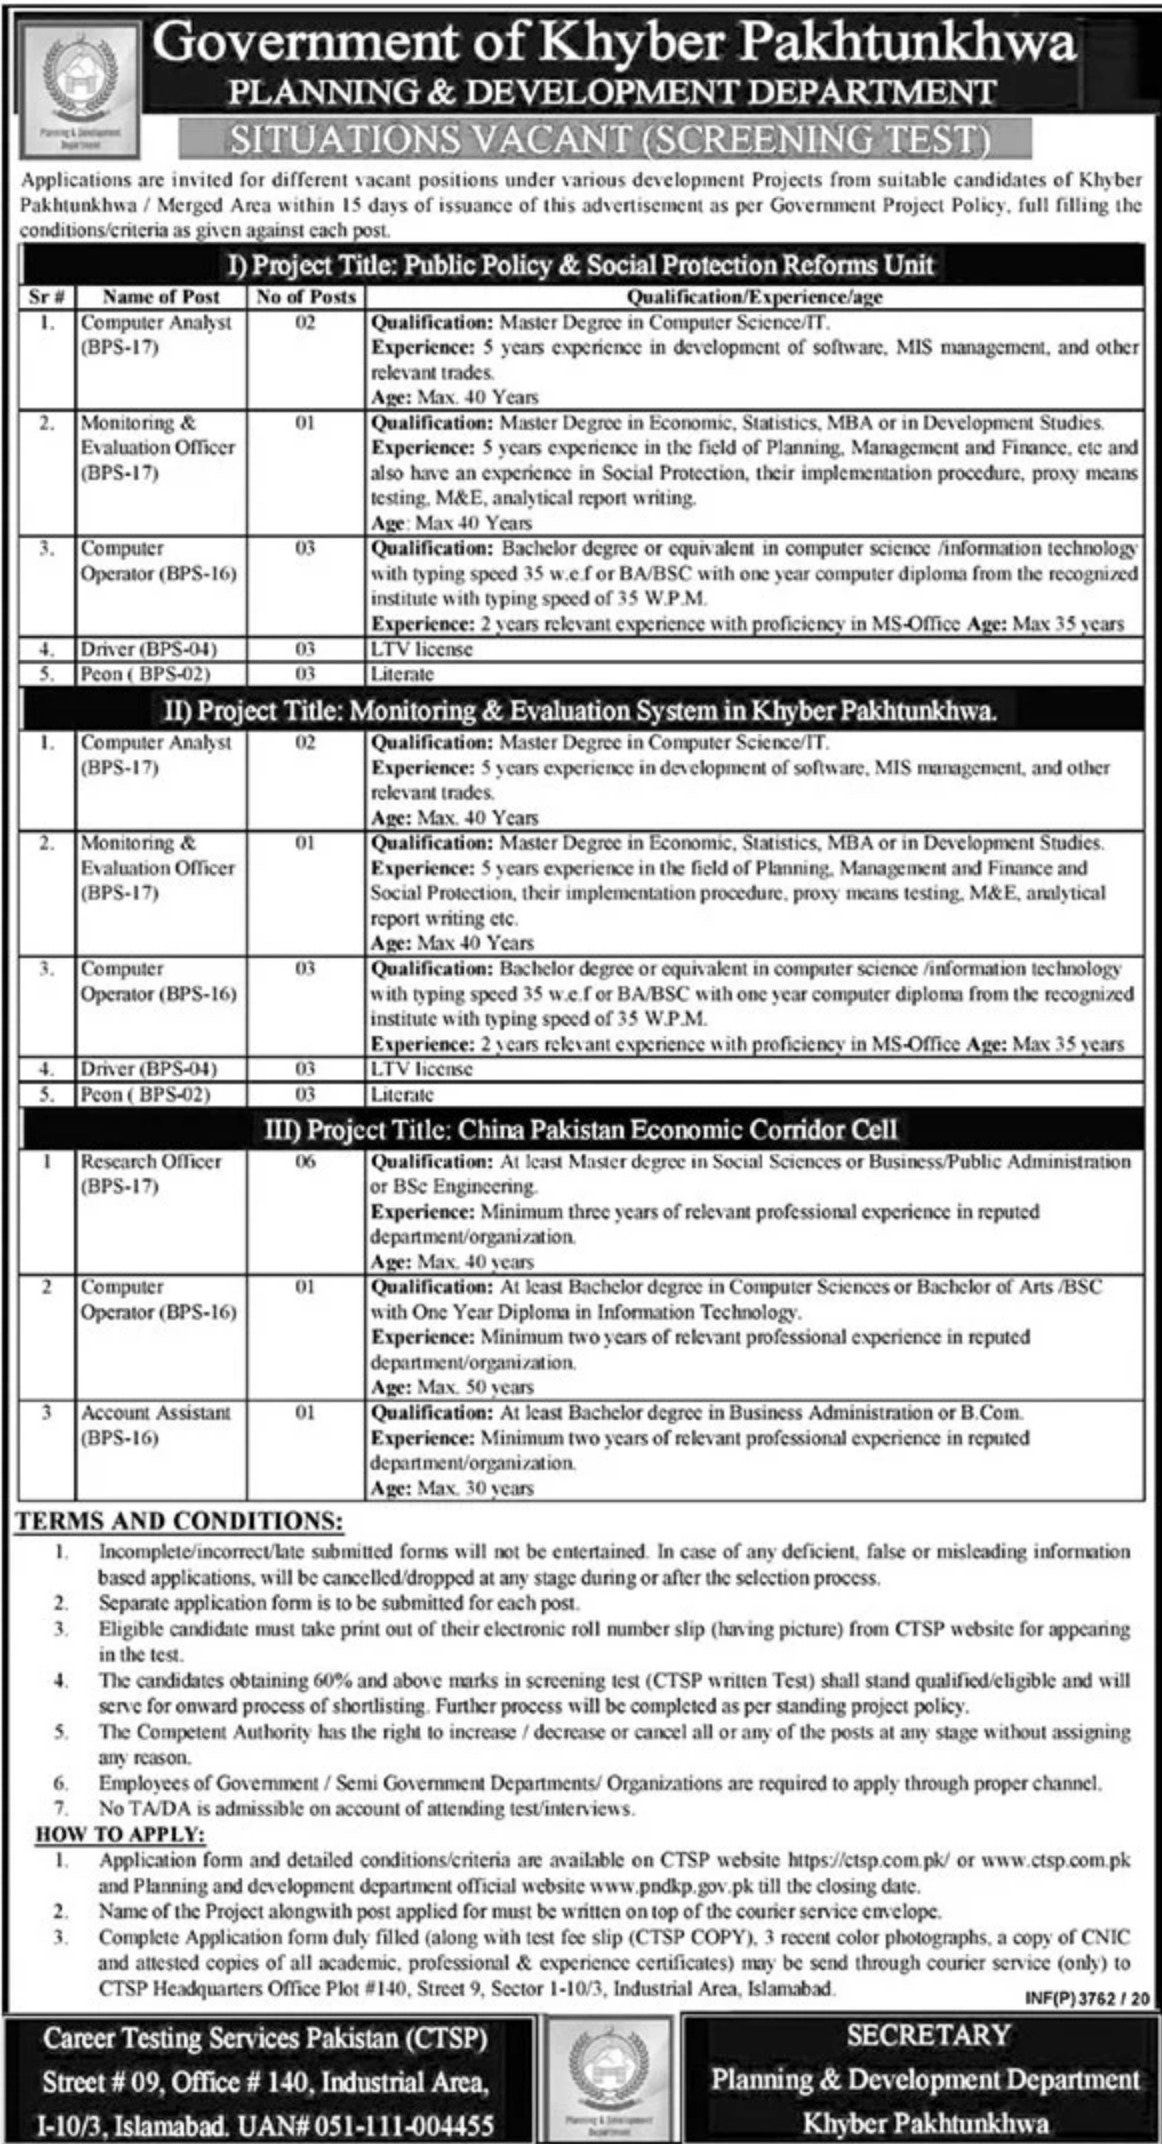 Planning & Development Department Govt of Khyber Pakhtunkhwa Jobs October 2020